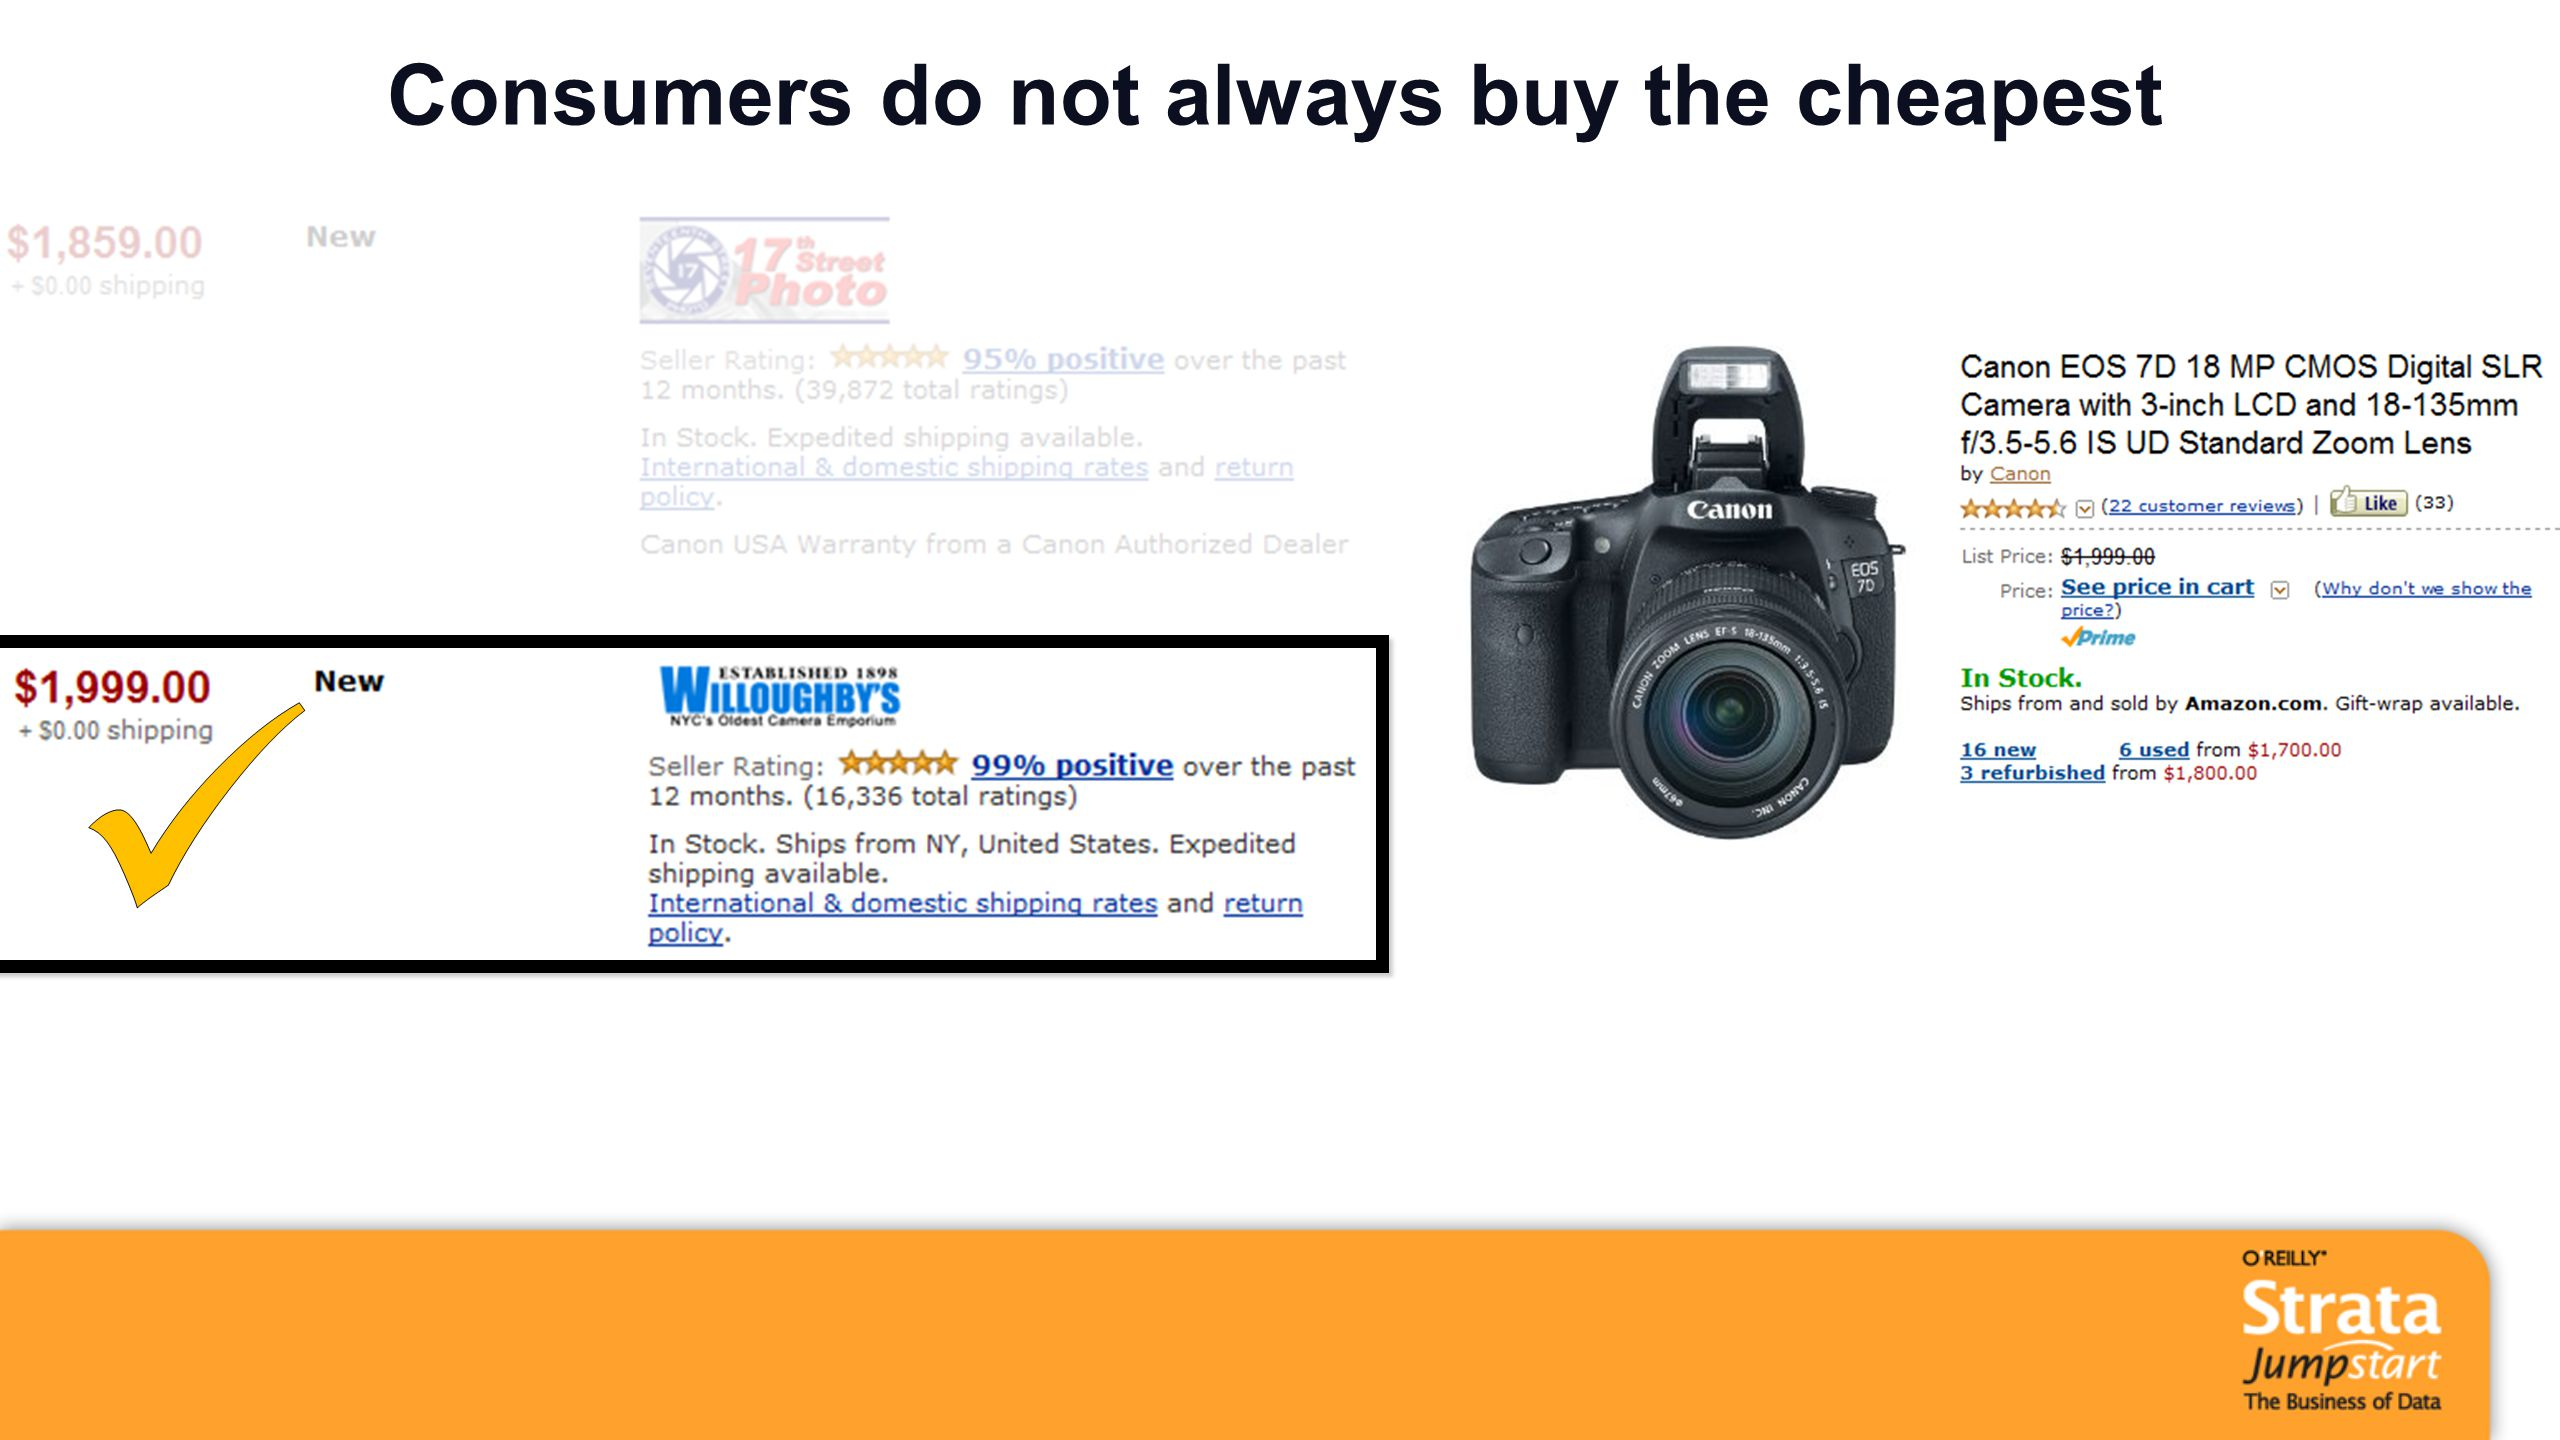 Consumers do not always buy the cheapest